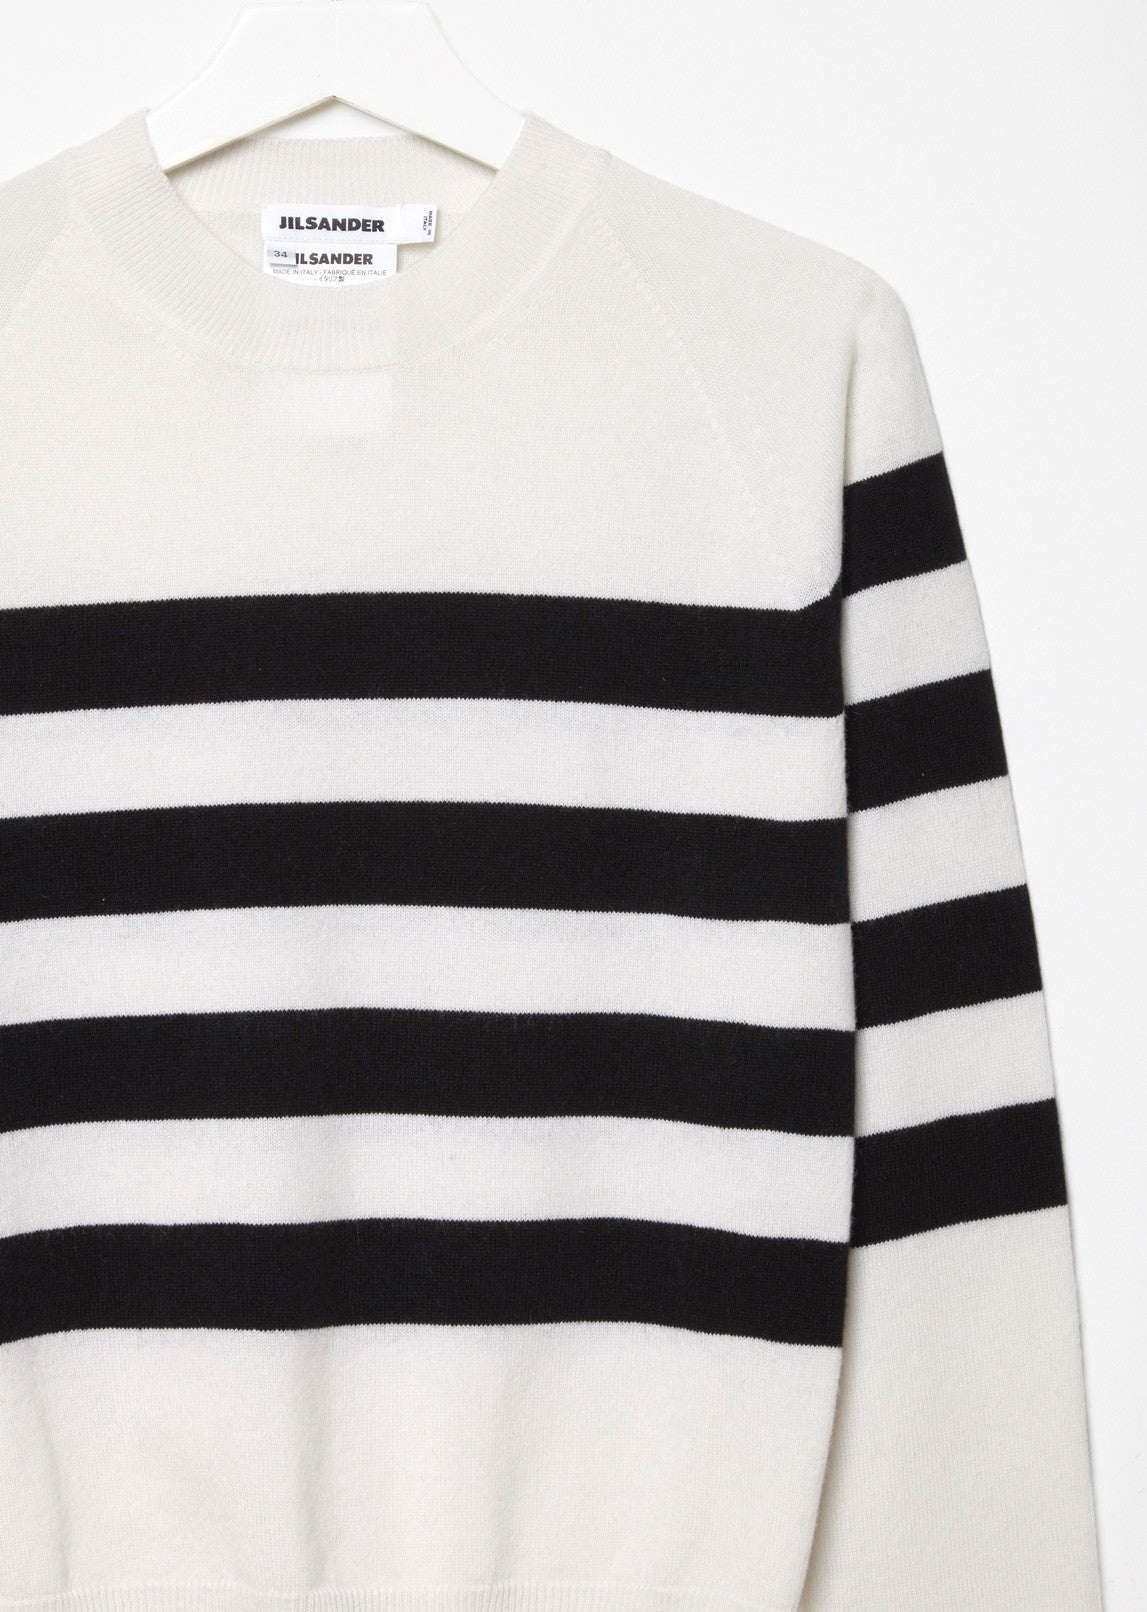 Cashmere Bold Stripes Sweater